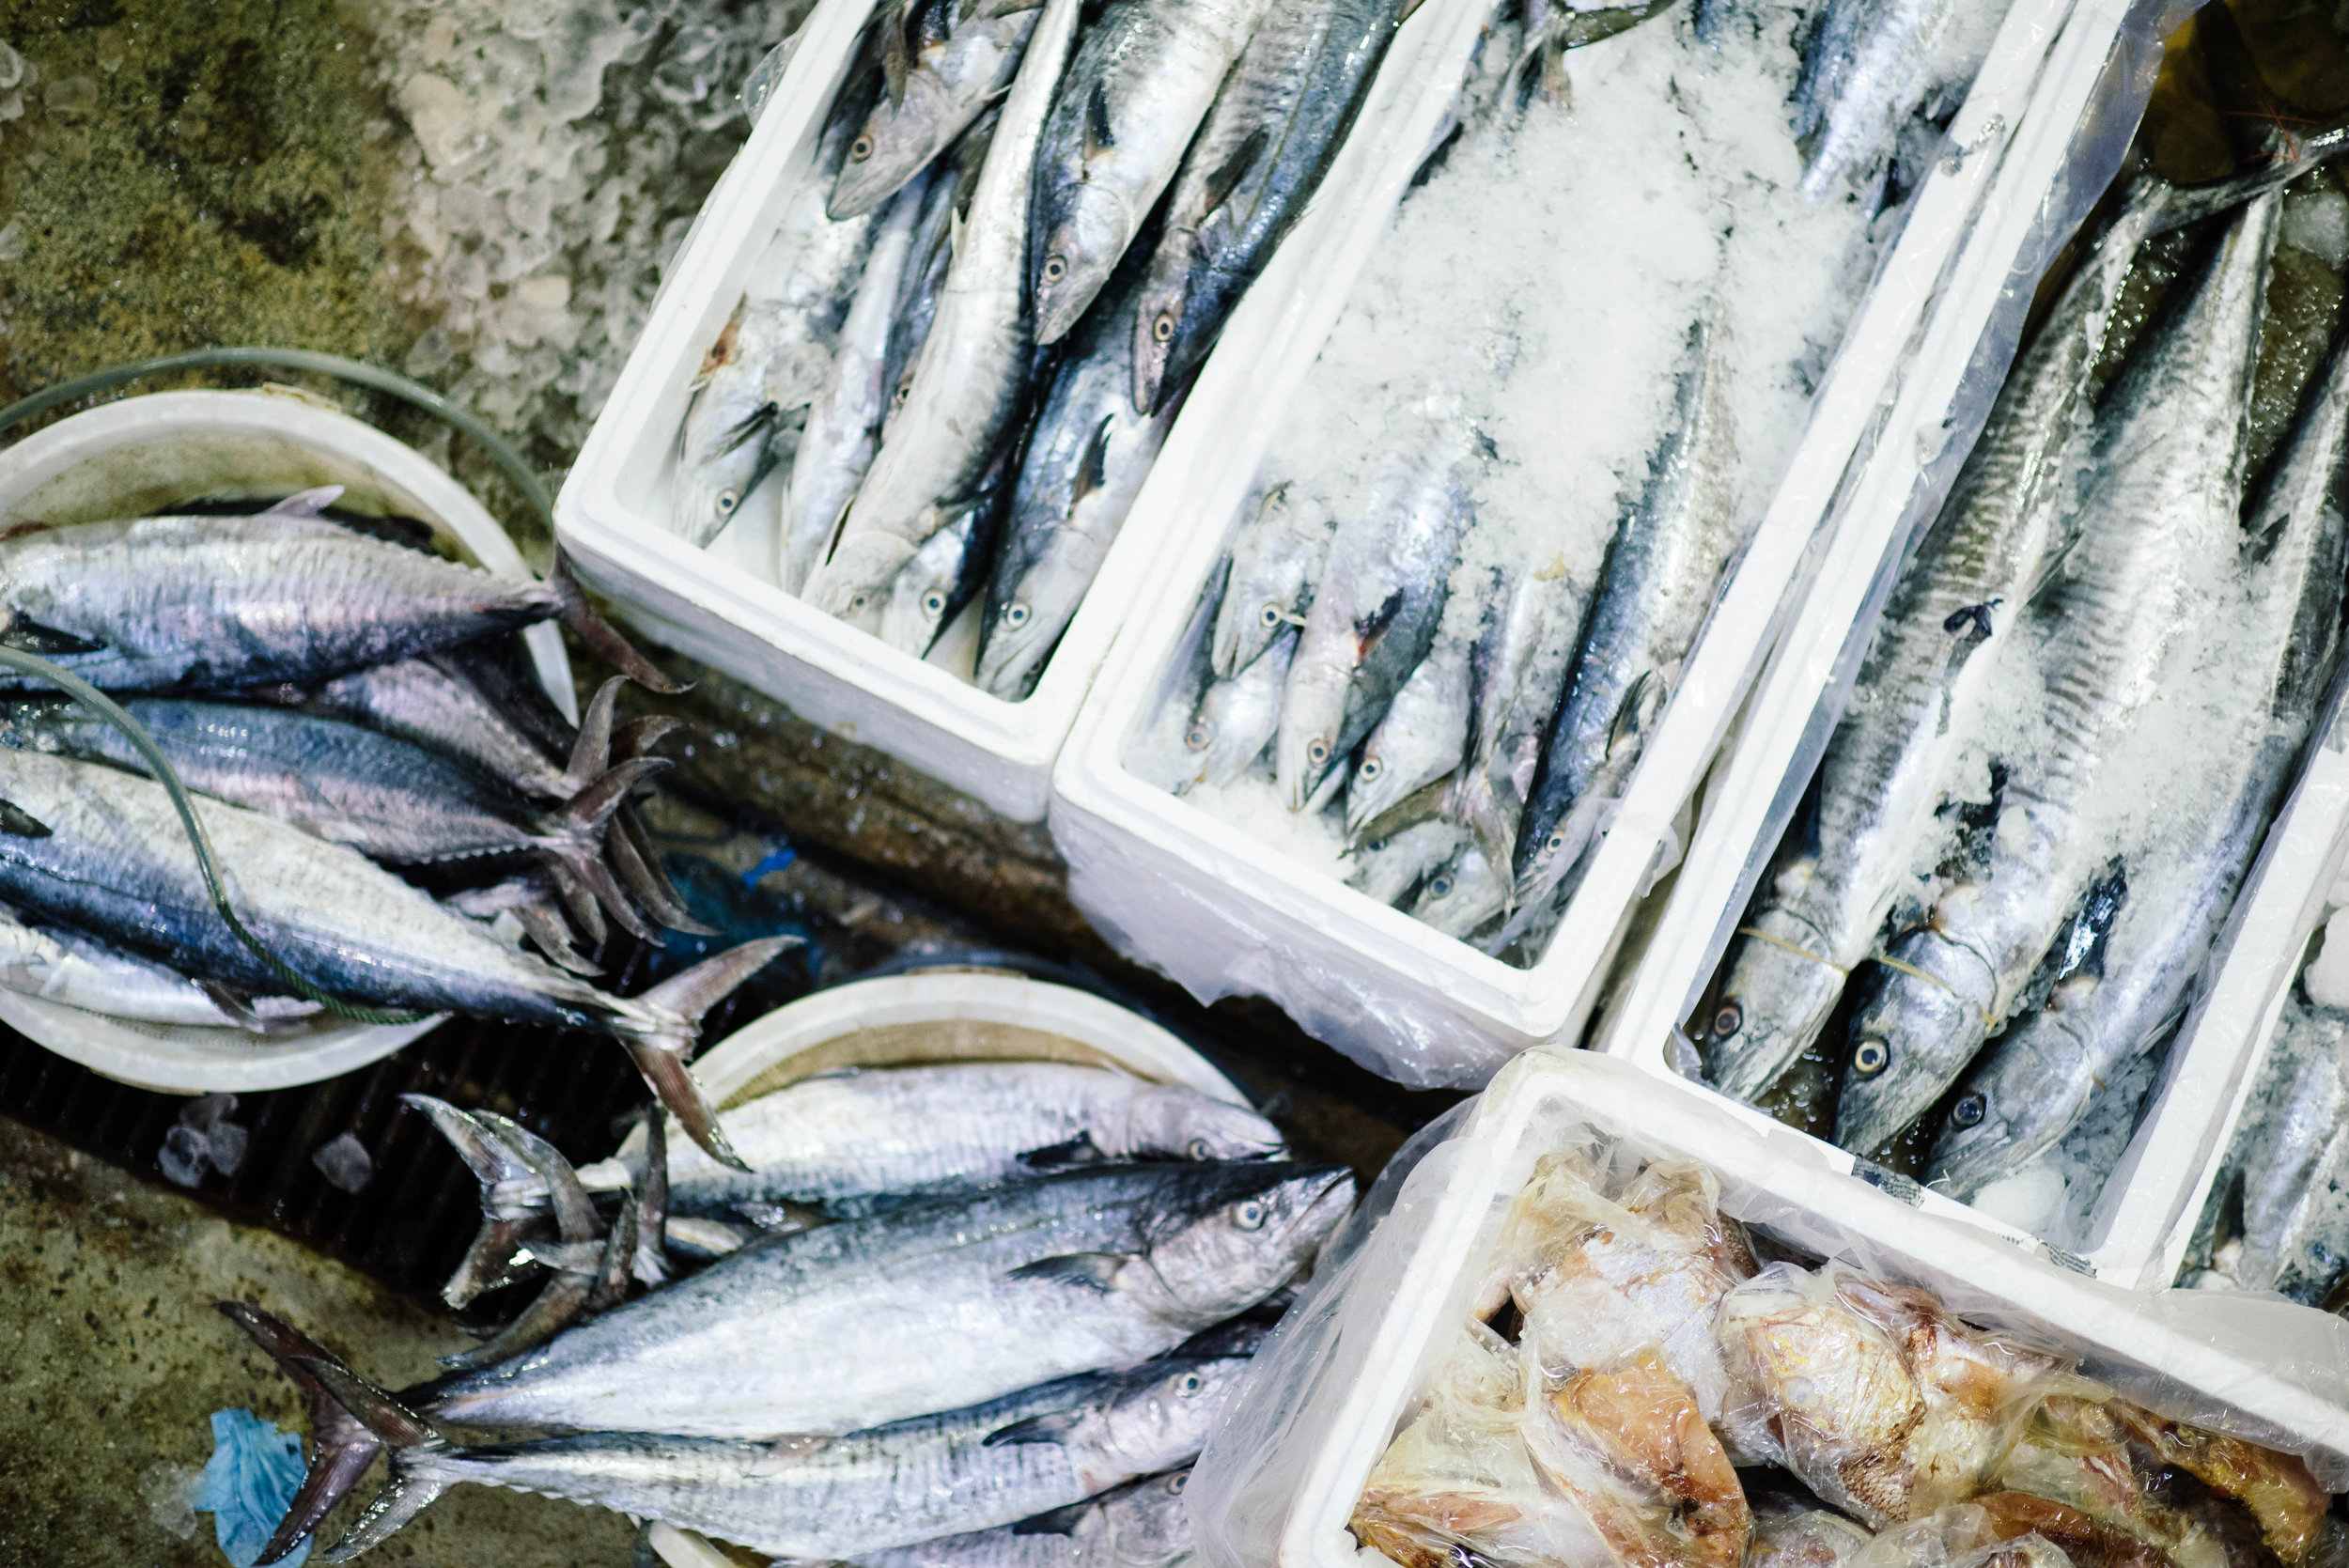 How to buy sustainably? - Tips and tricks when buying seafood—whether it's at your local market or at the grocery store.